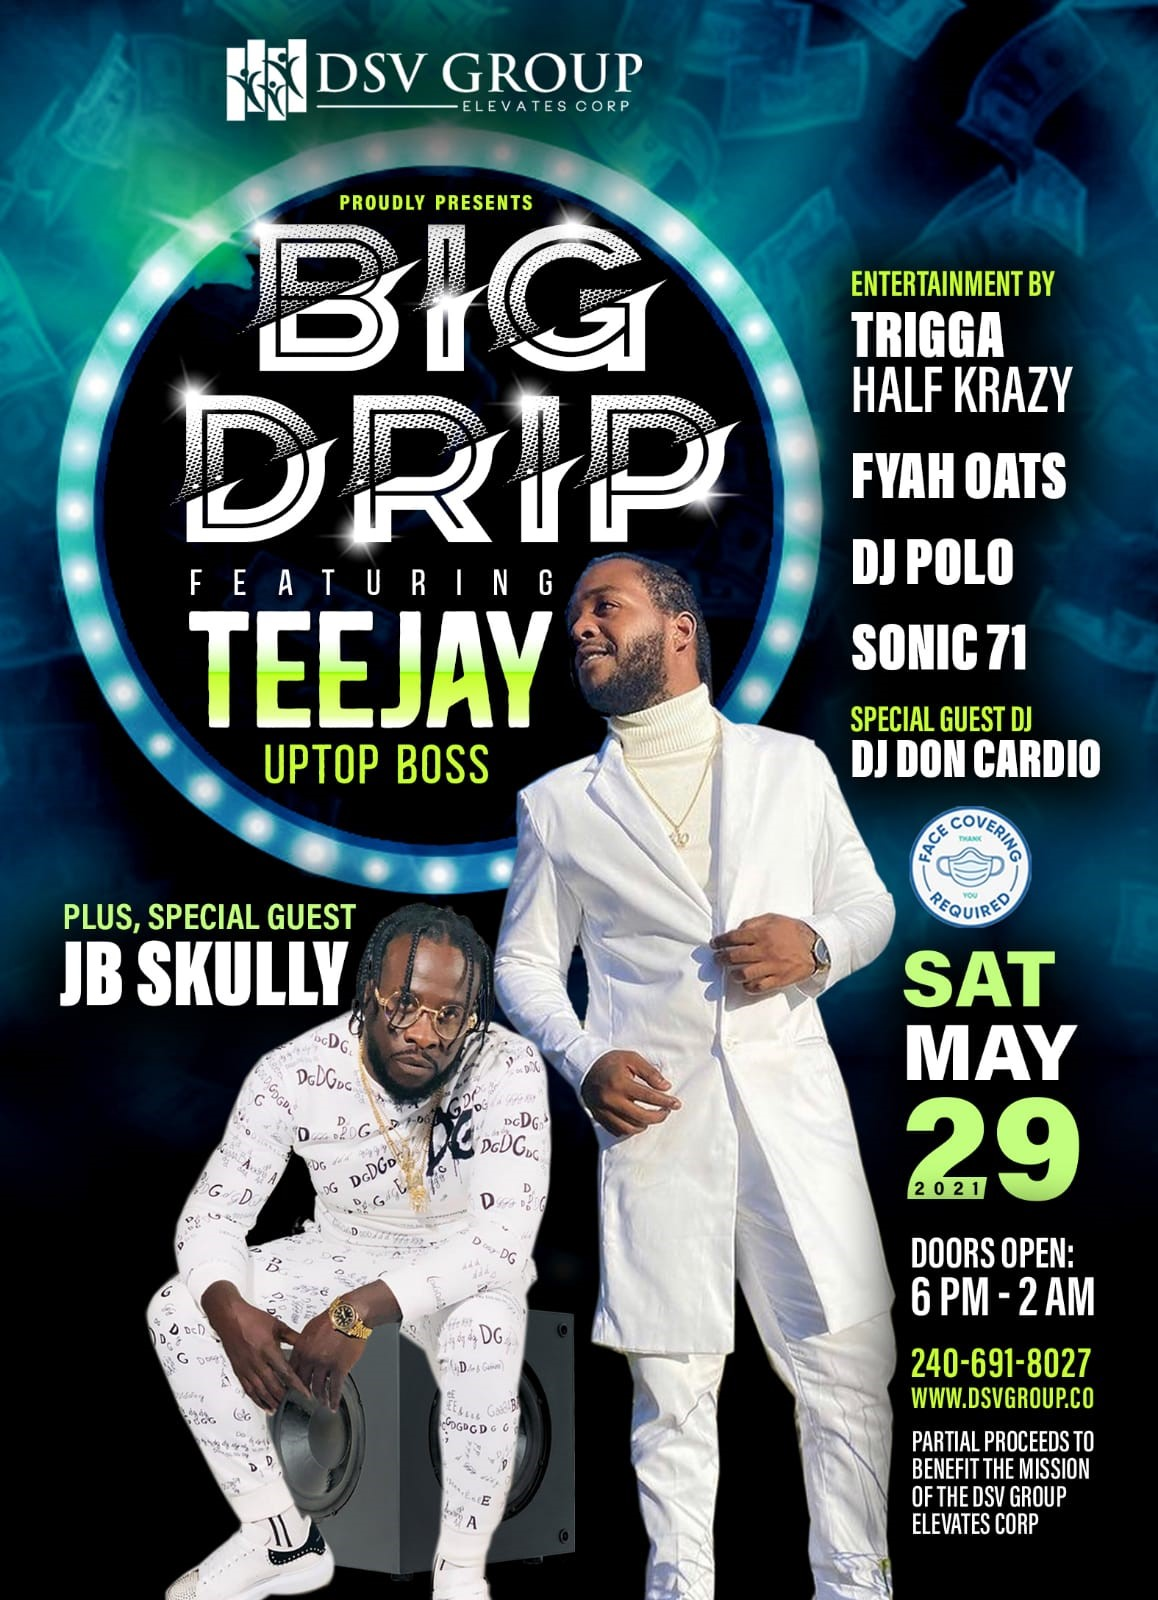 Big Drip Feat. Teejay Uptop Boss & Special Guest JB Skully on May 29, 18:00@8844 Washington Blvd Jessup, MD - Buy tickets and Get information on www.fetefinders.com tickets.fetefinders.com